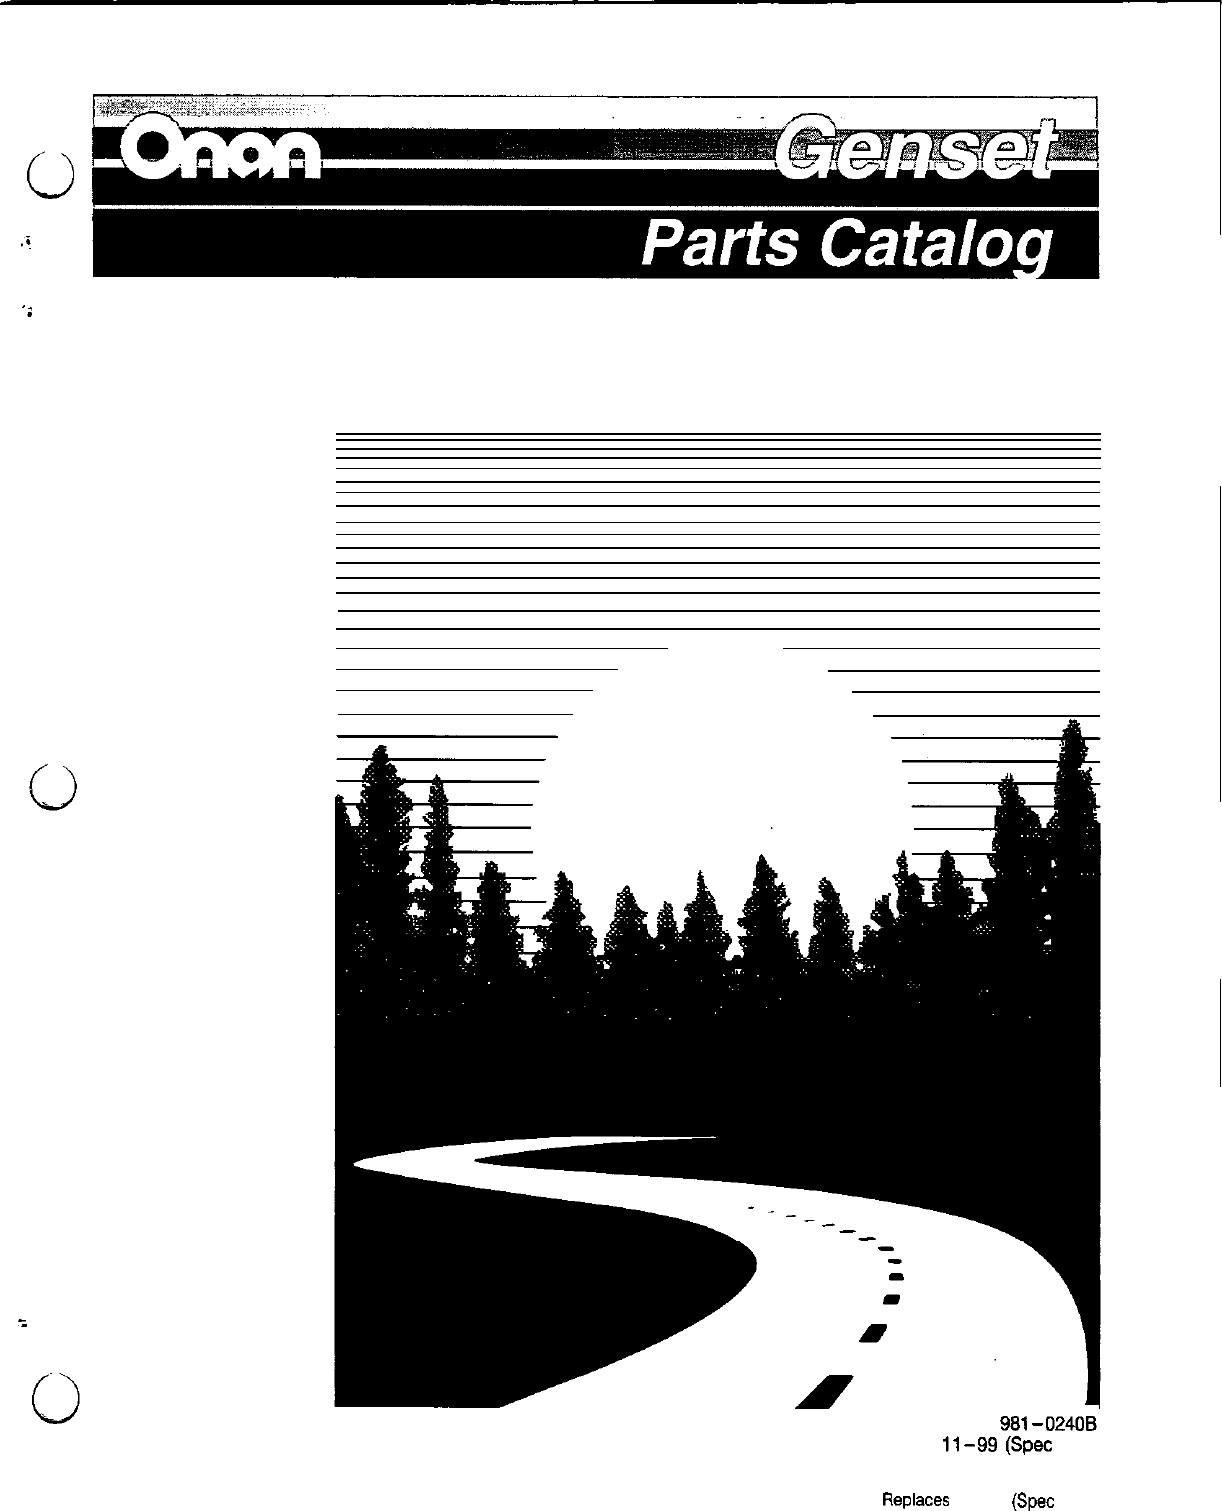 981 0240b onan dkd spec a e aux rv genset parts manual 11 1999